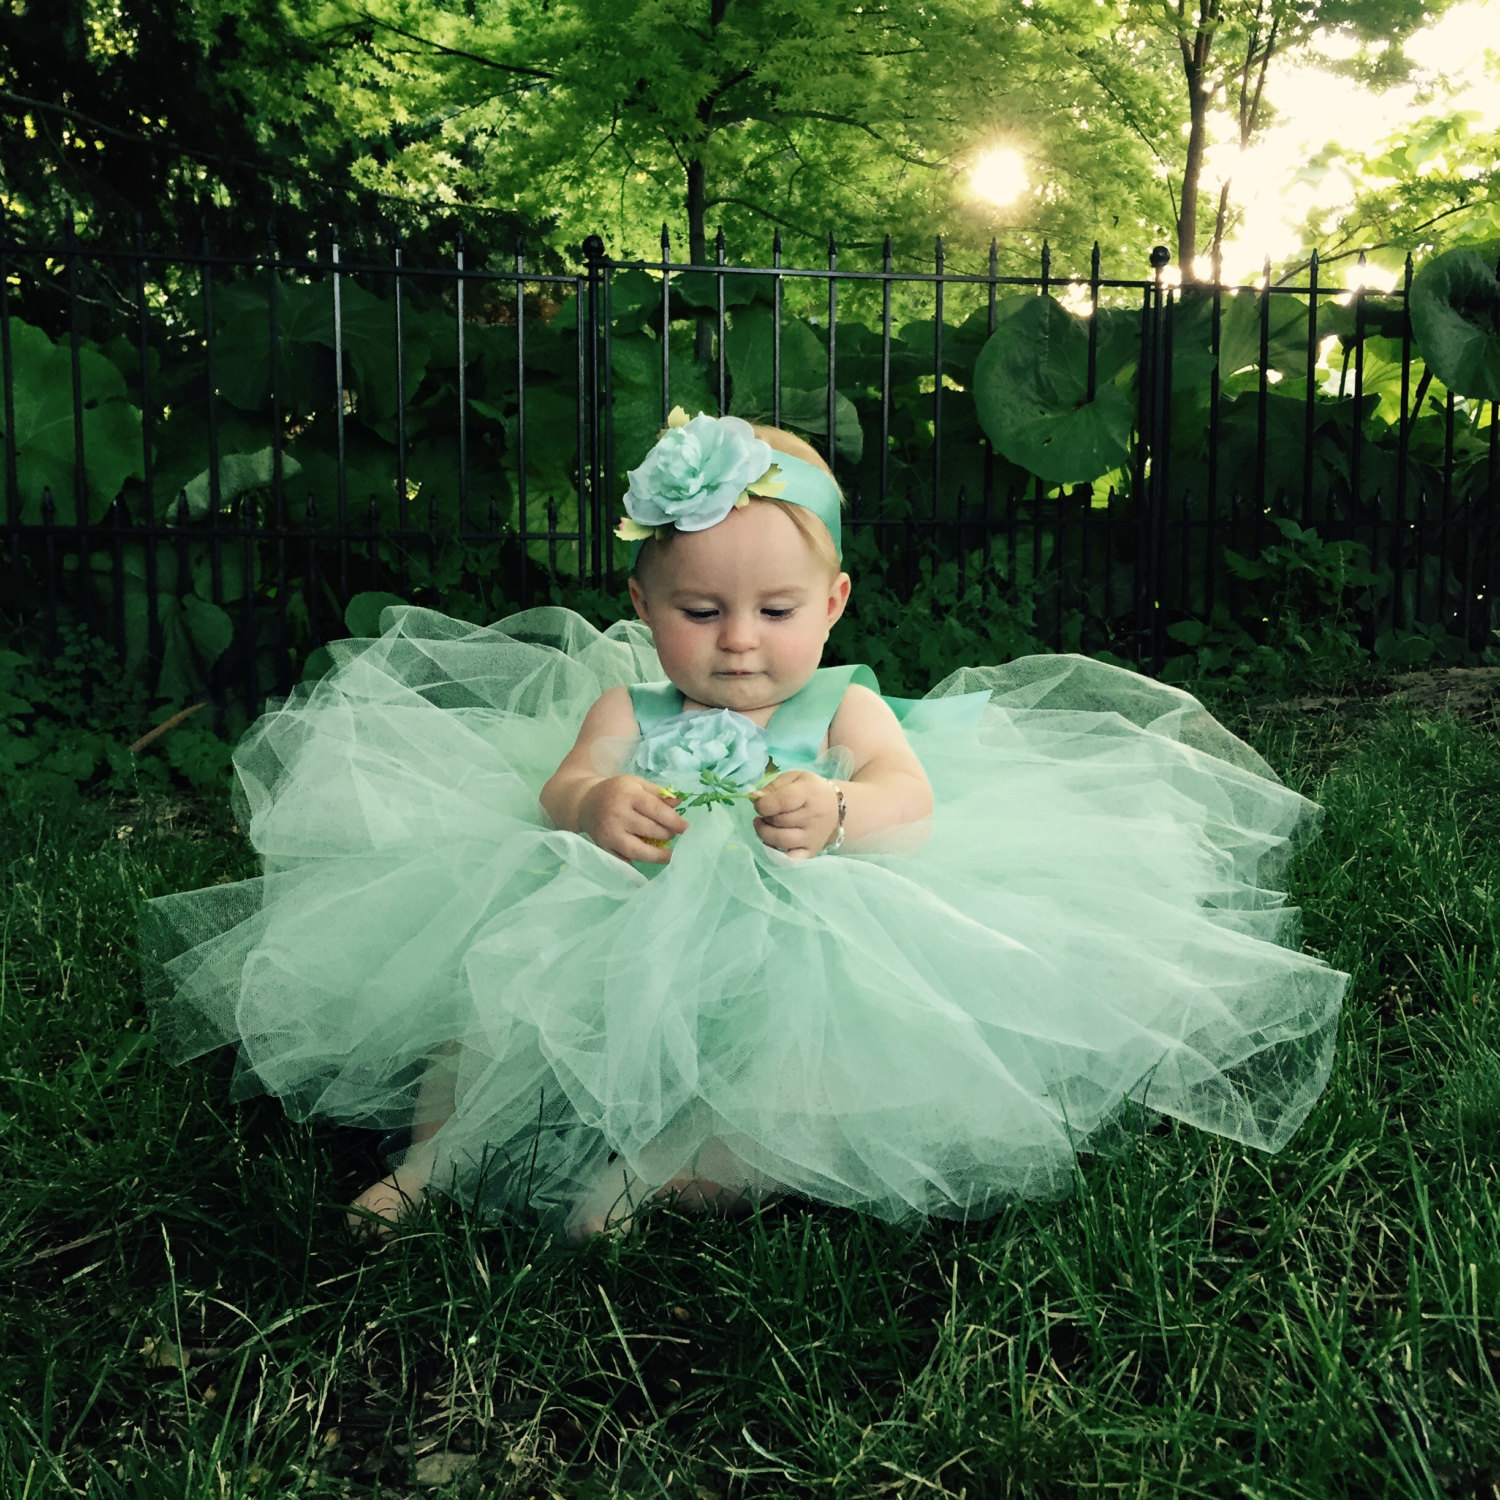 Mint Green Tulle Dress Flower Girl Attire Flowergirl Gown Christening Baby Blessing Set First Birthday Tutu Outfit Fairy Princess Costume